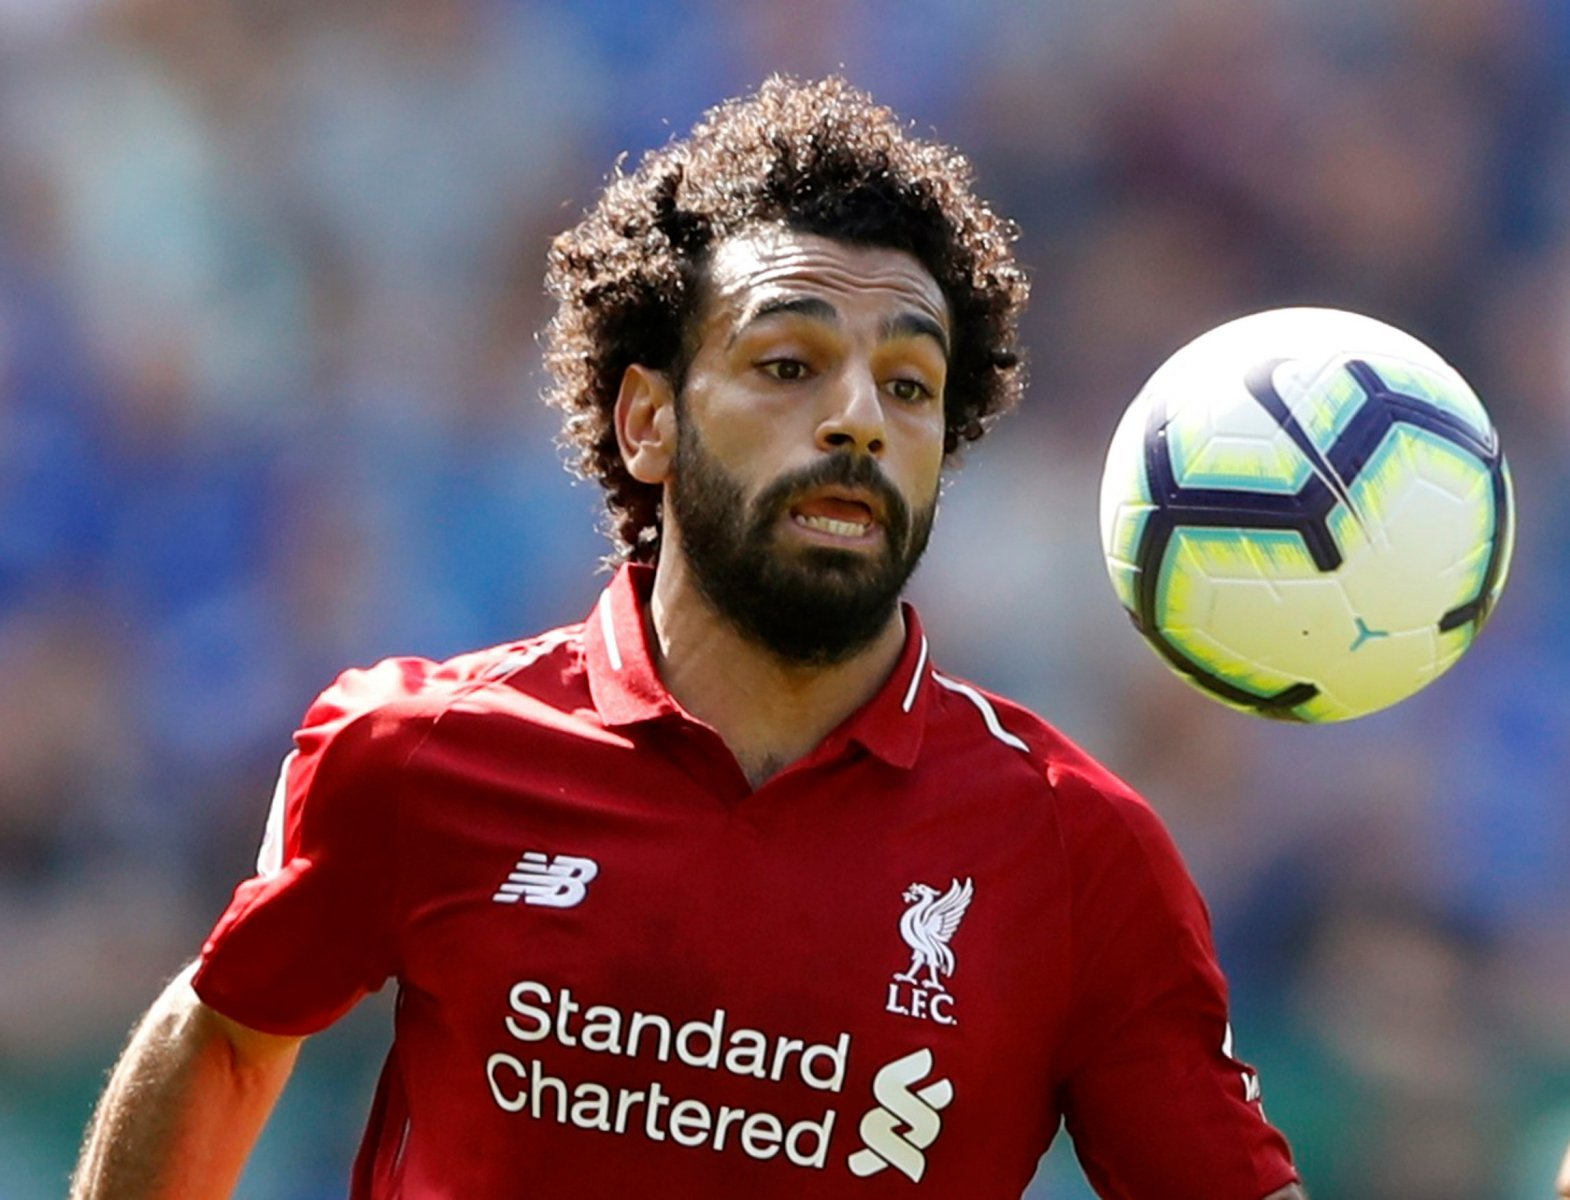 Mohamed Salah being eyed as Real Madrid search for massive signing